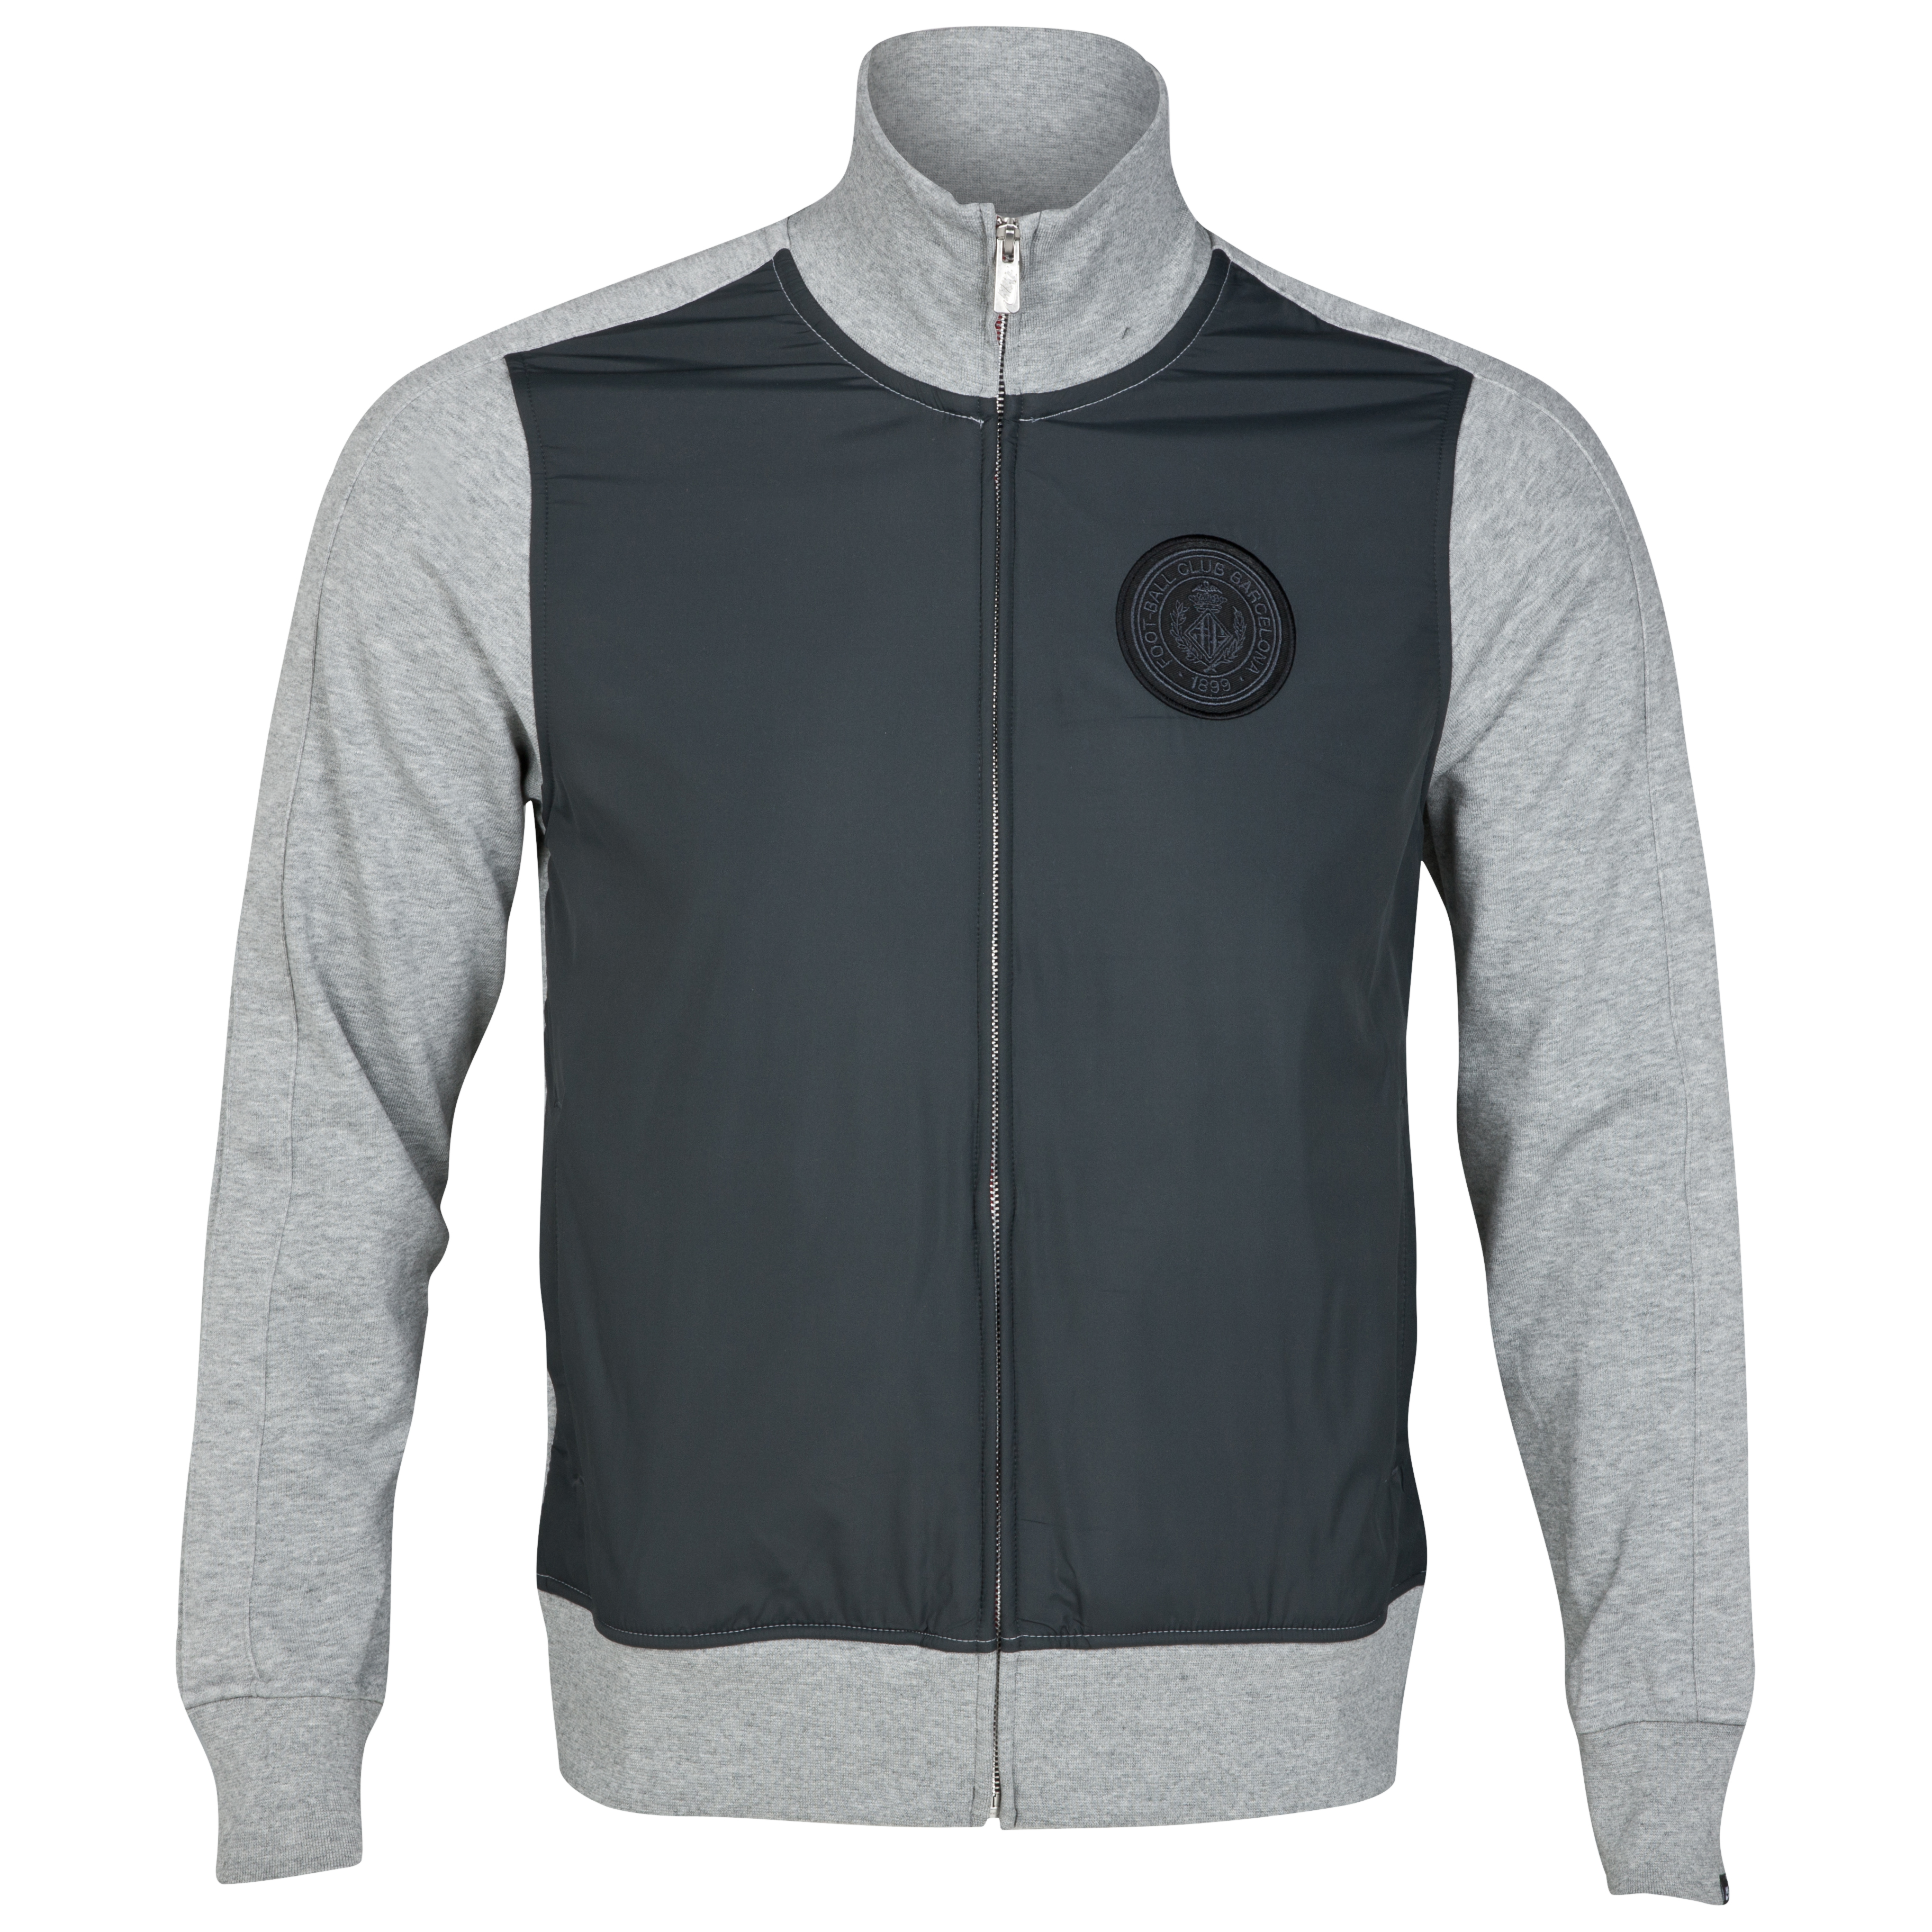 Barcelona NSW N98 Track Jacket - Dark Grey Heather/Anthracite